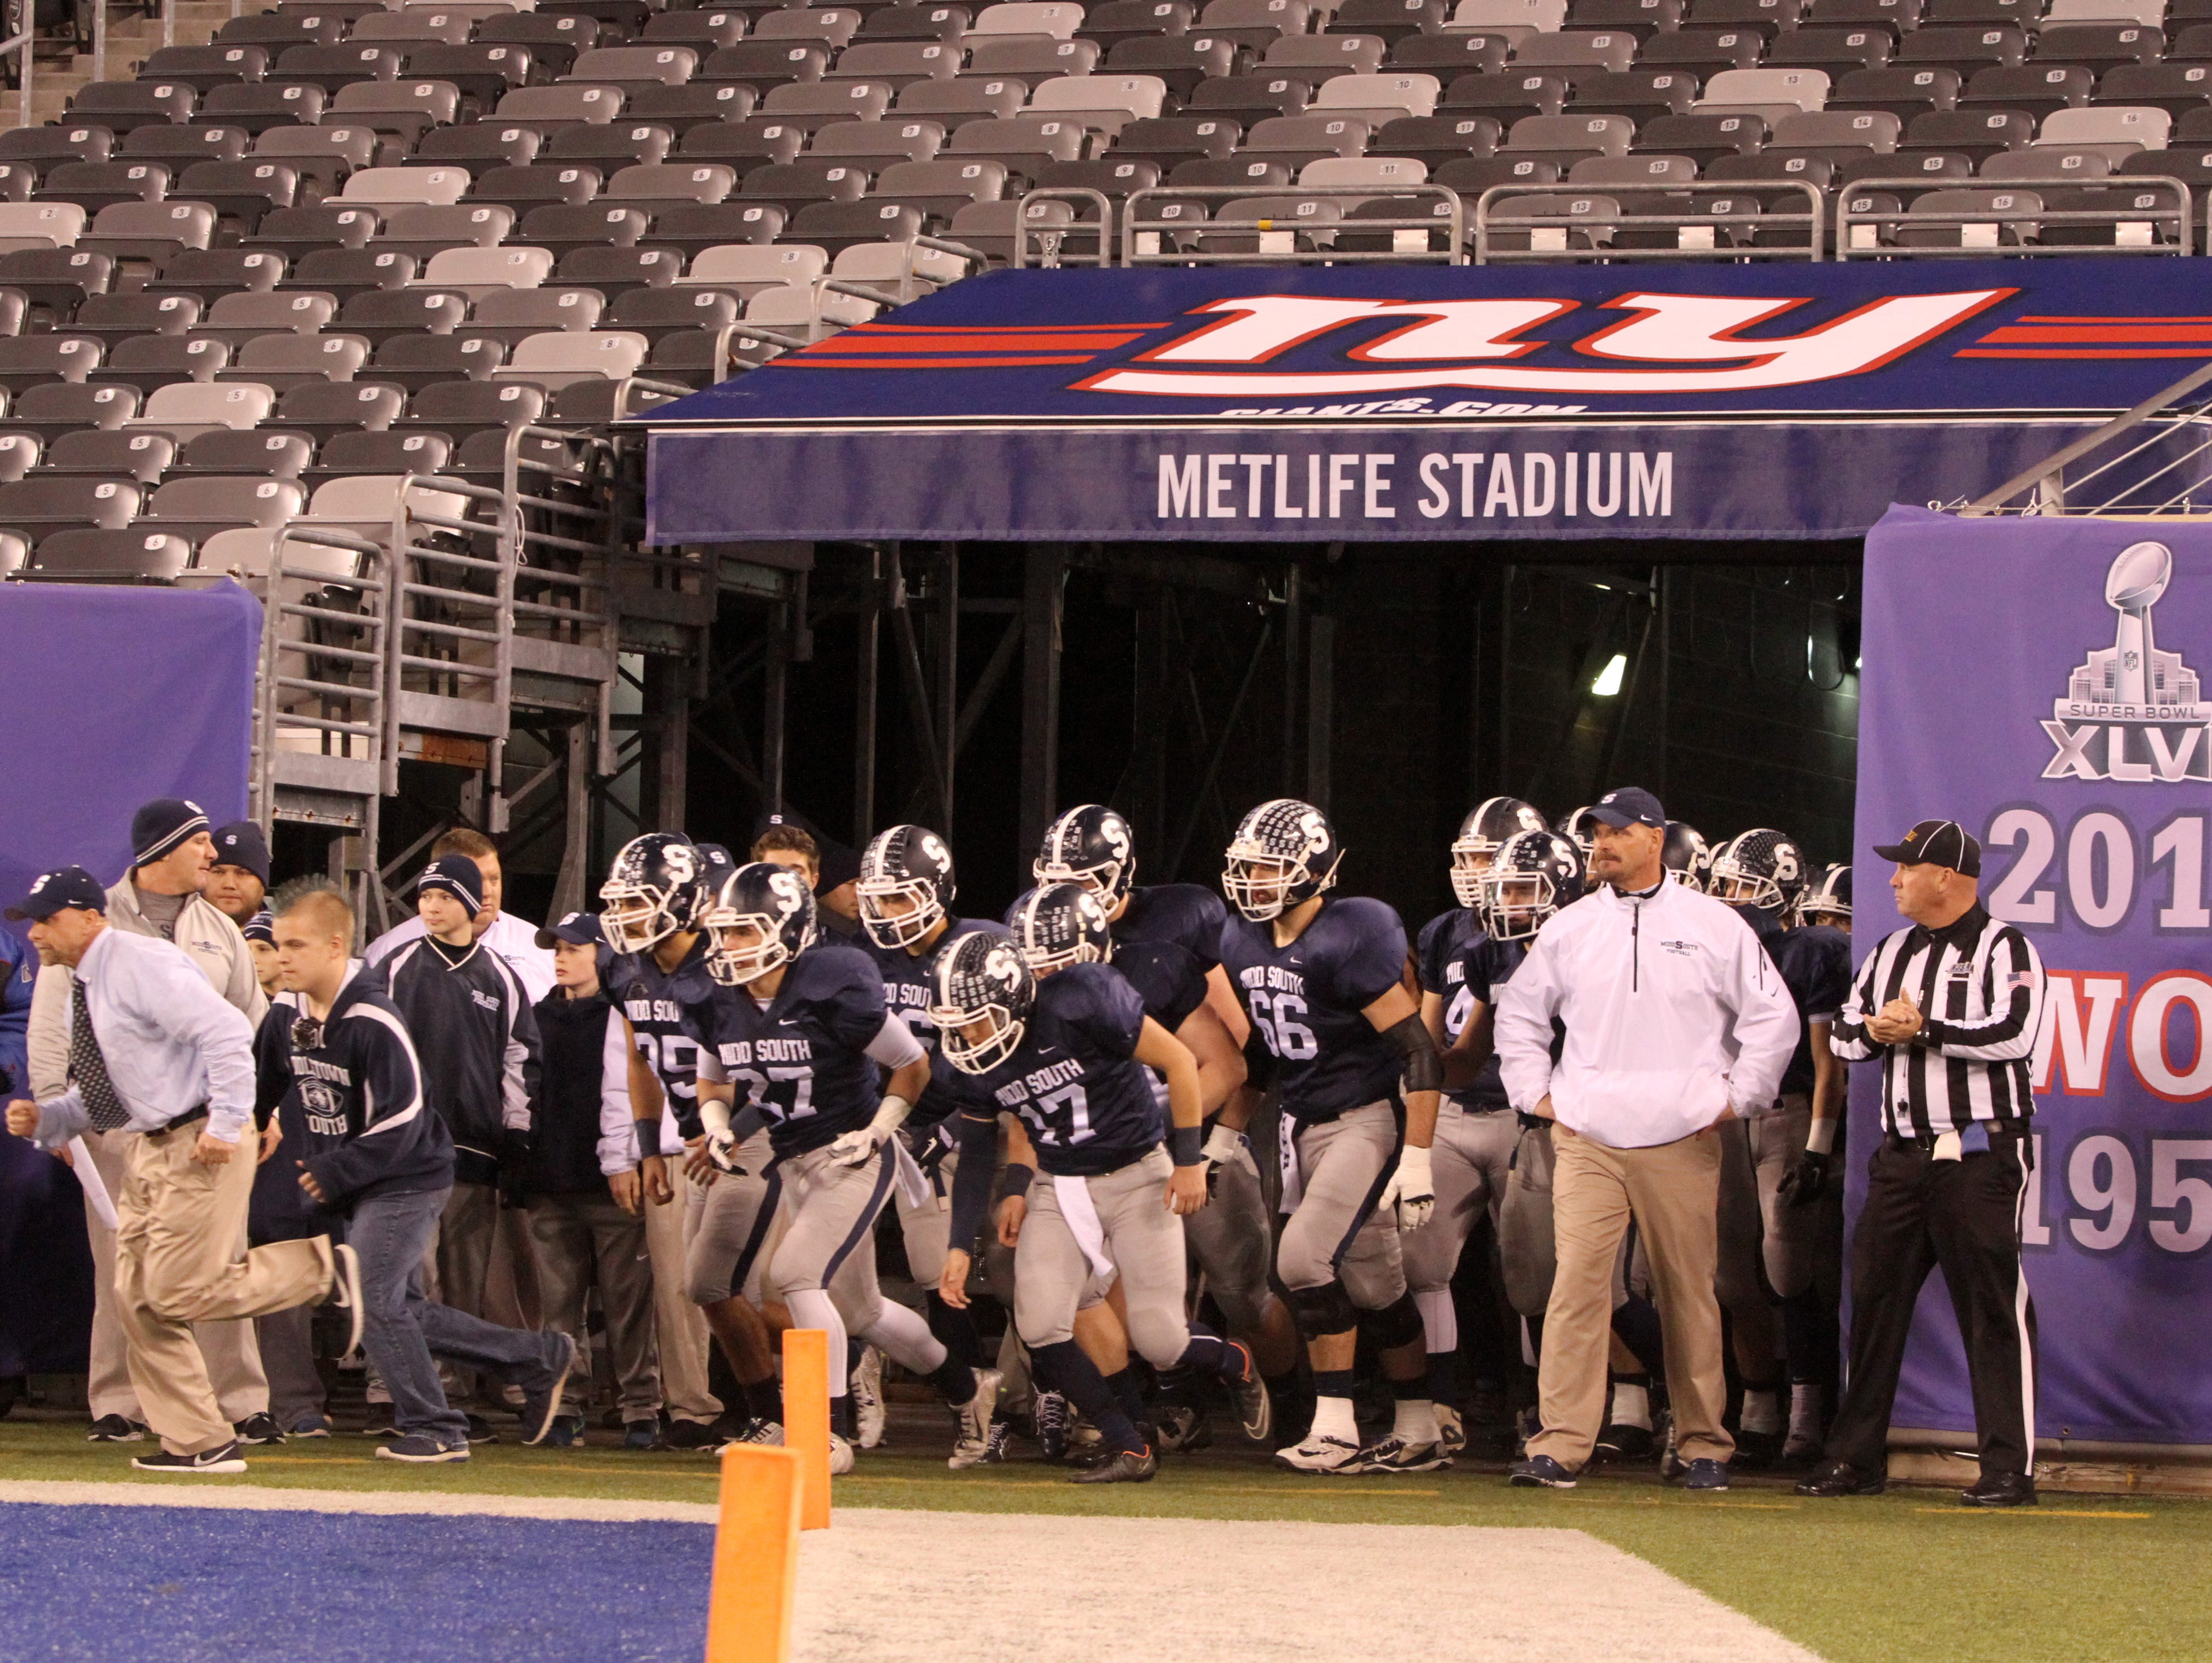 Middletown South High School football team runs onto the field to play against Phillipsburg High School during the North 2 Group IV game of the 2015 NJSIAA/MetLife Stadium High School Football Championships at MetLife Stadium in East Rutherford, NJ Saturday December 5, 2015.